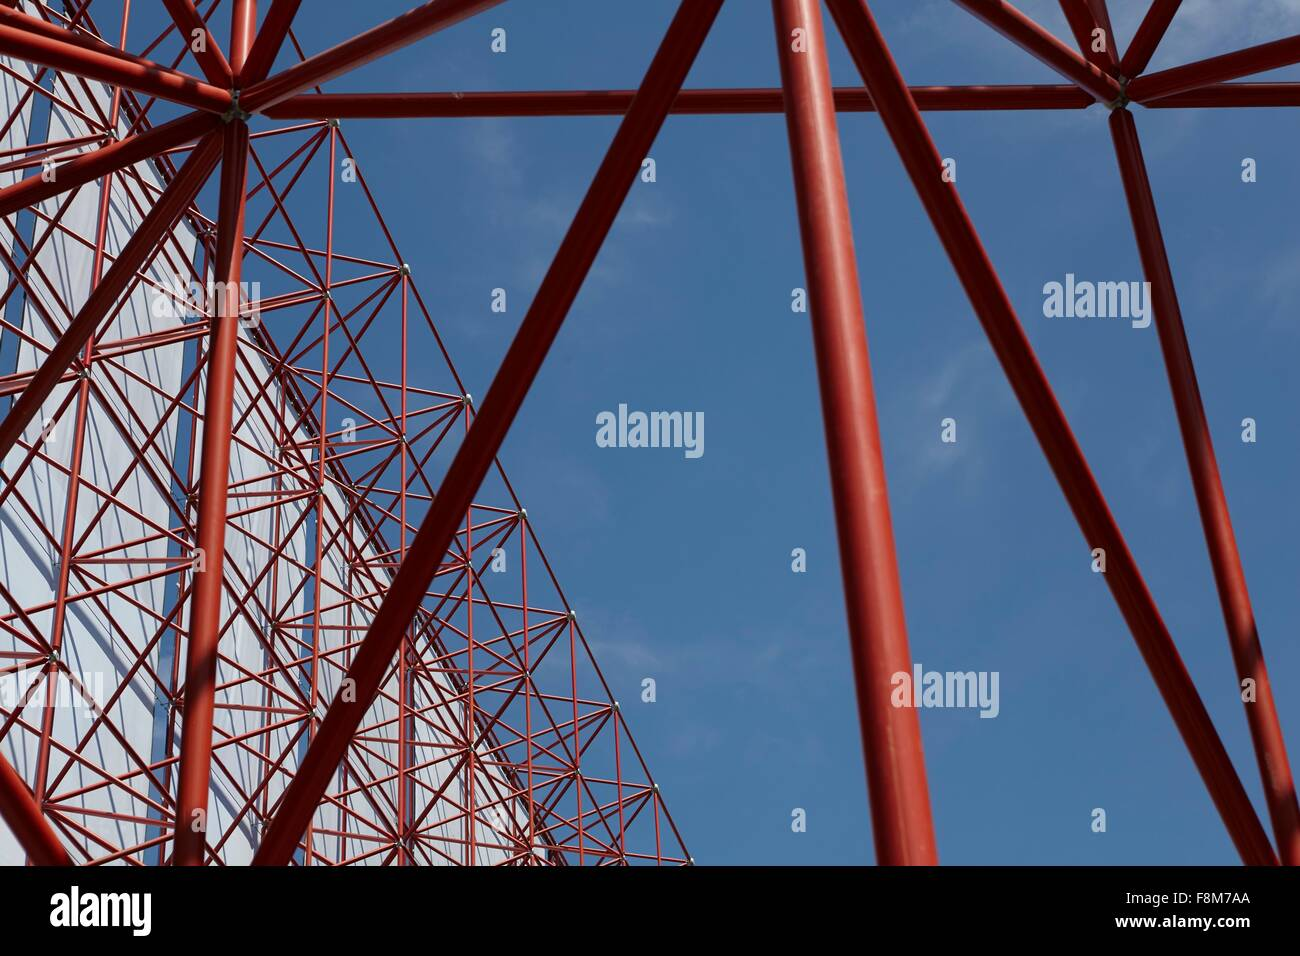 Tall red framework structure with textile against blue sky - Stock Image